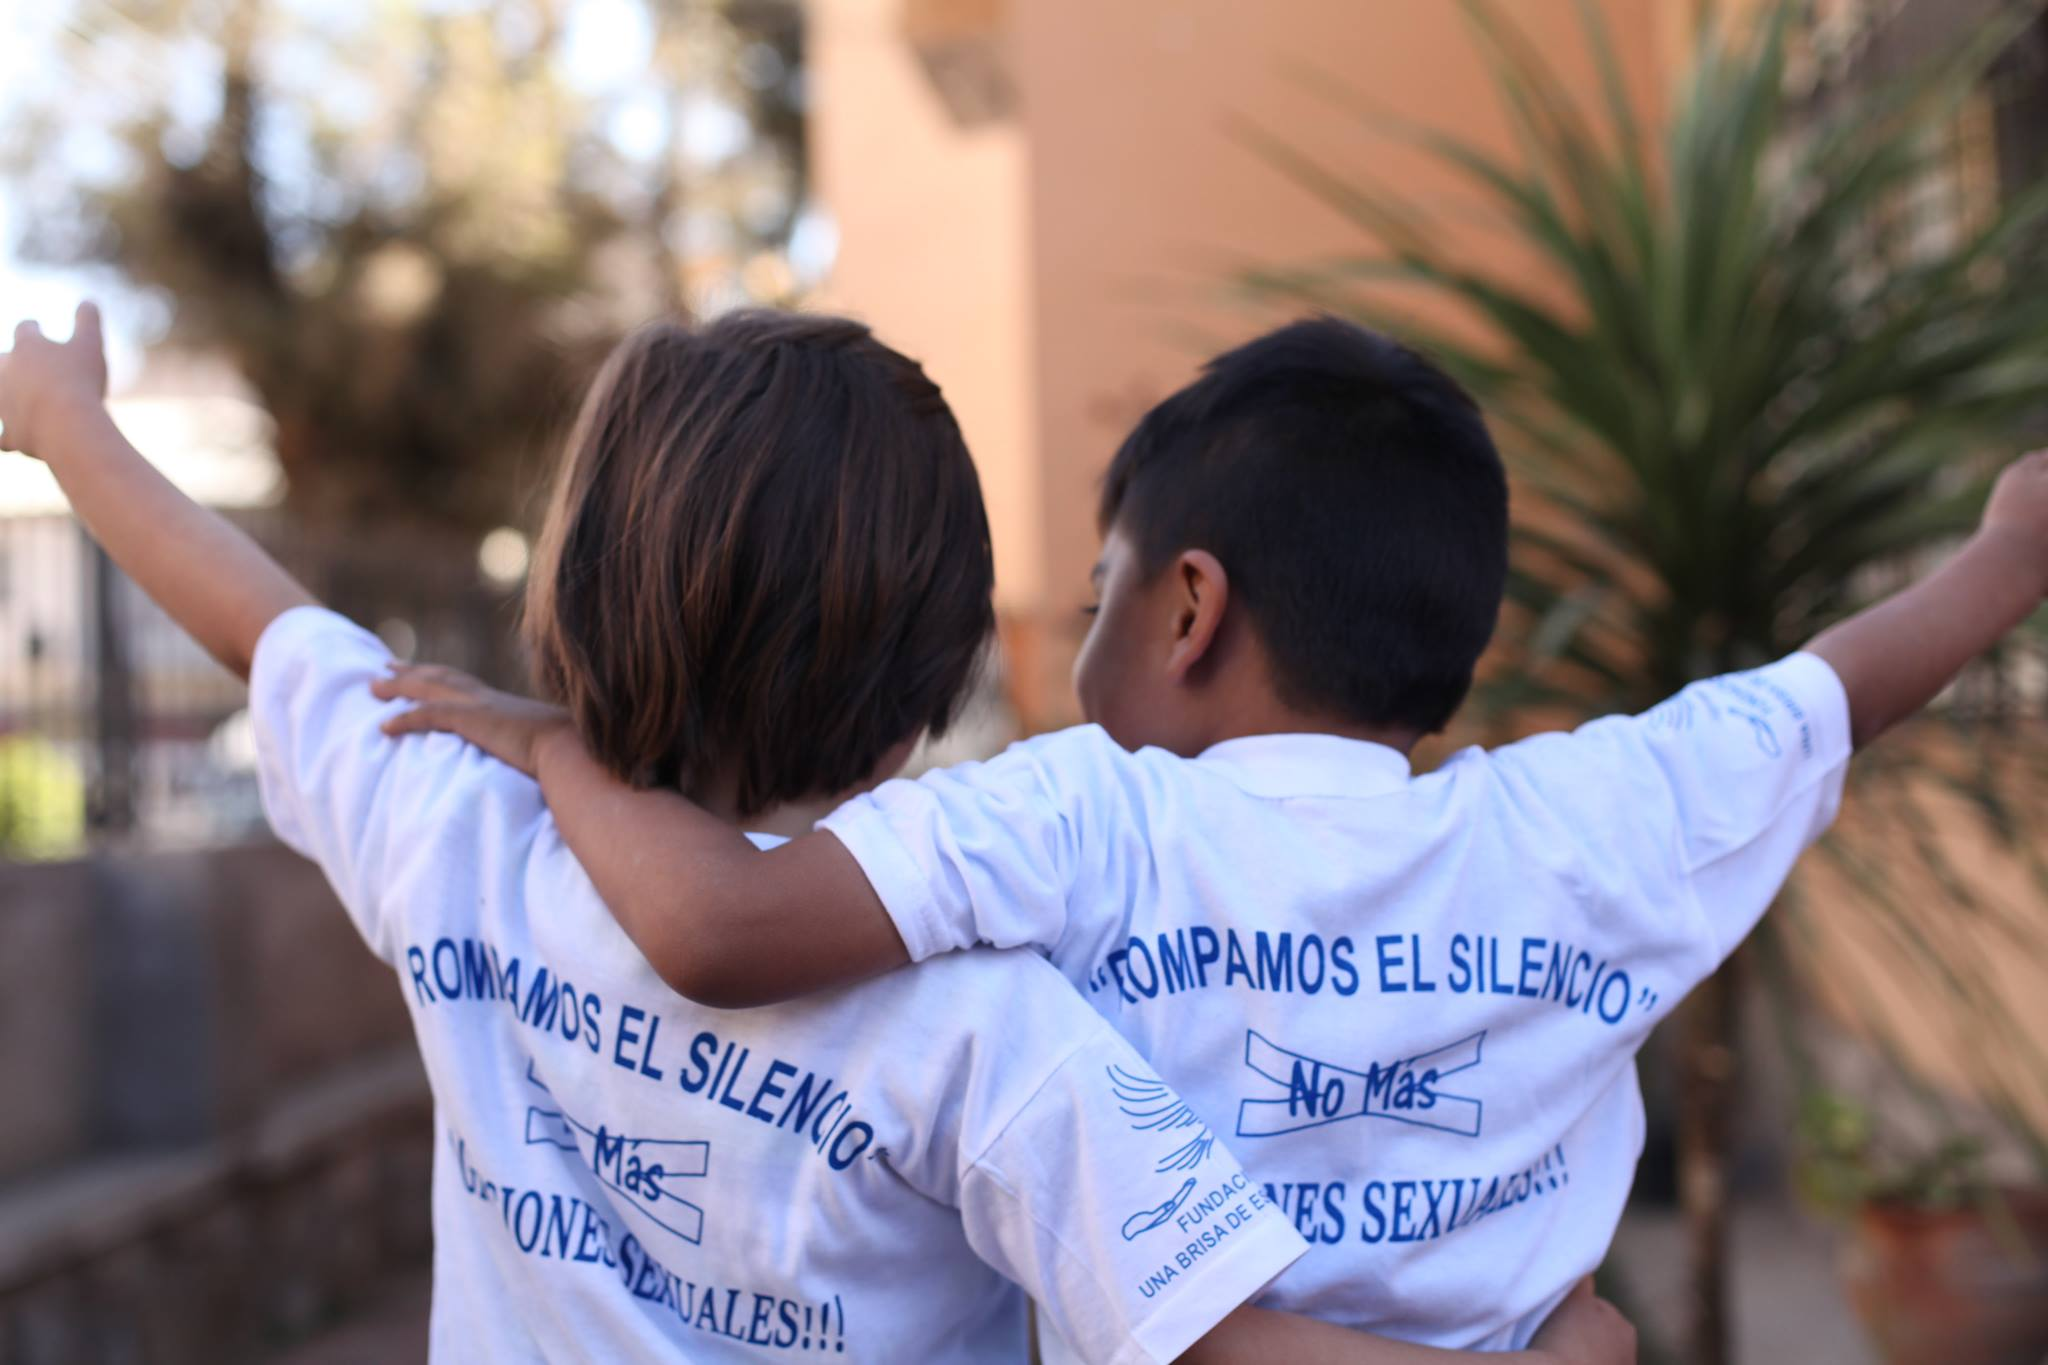 Two young children from A Breeze of Hope's center